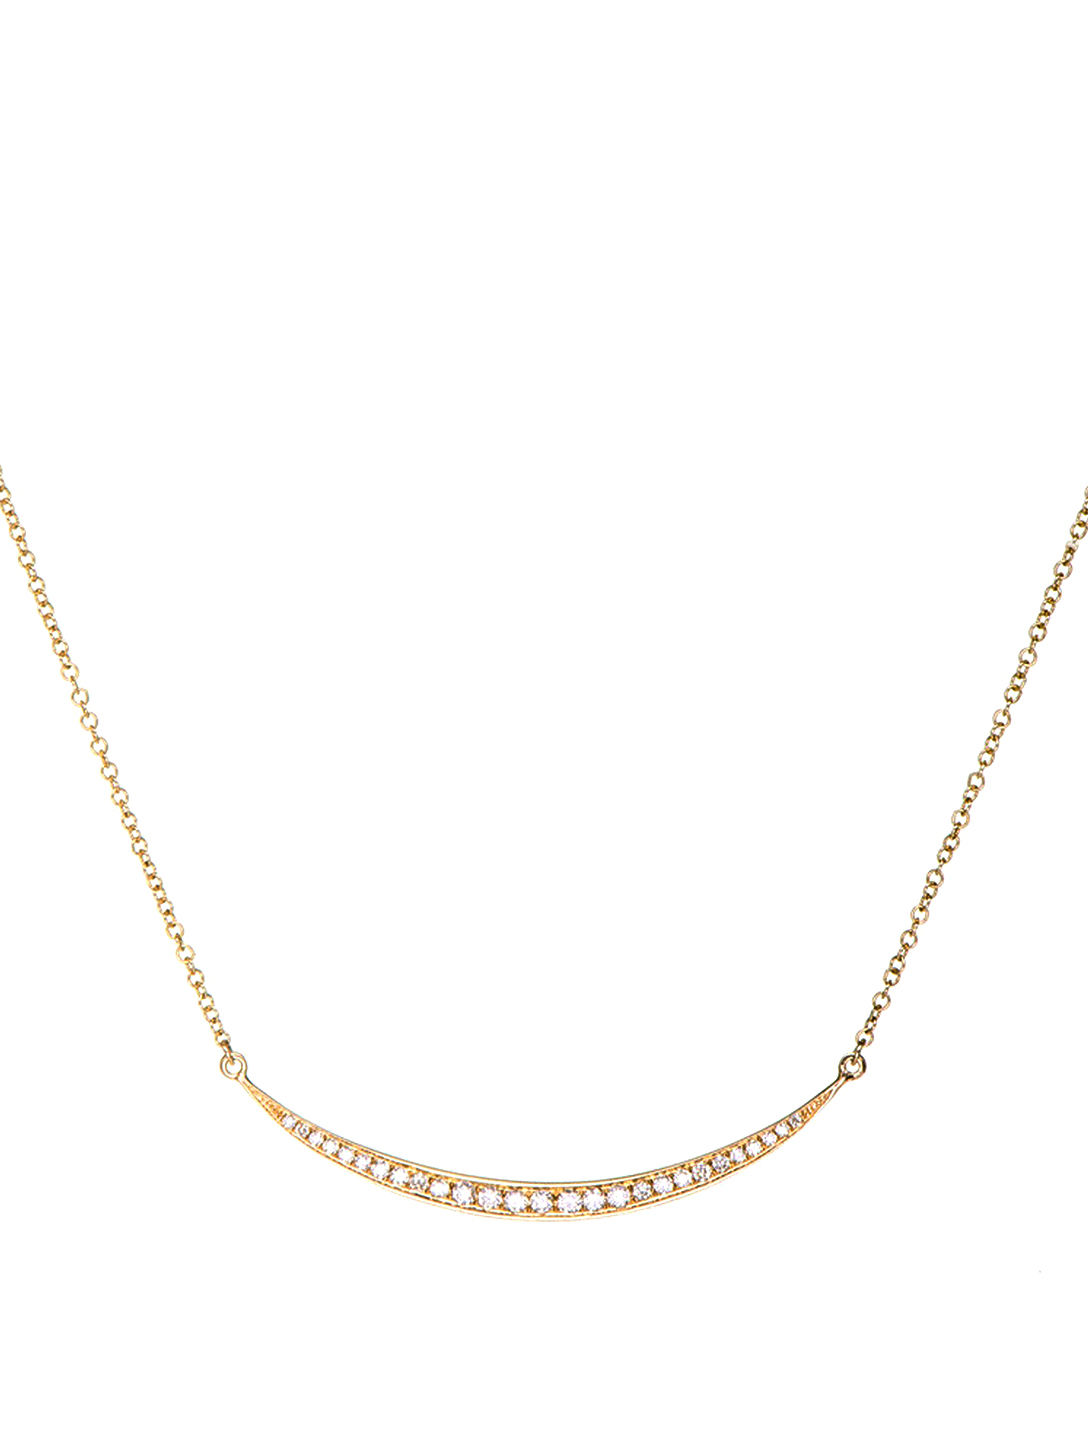 EF COLLECTION Mini 14K Gold Crescent Necklace With Diamonds Women's Metallic